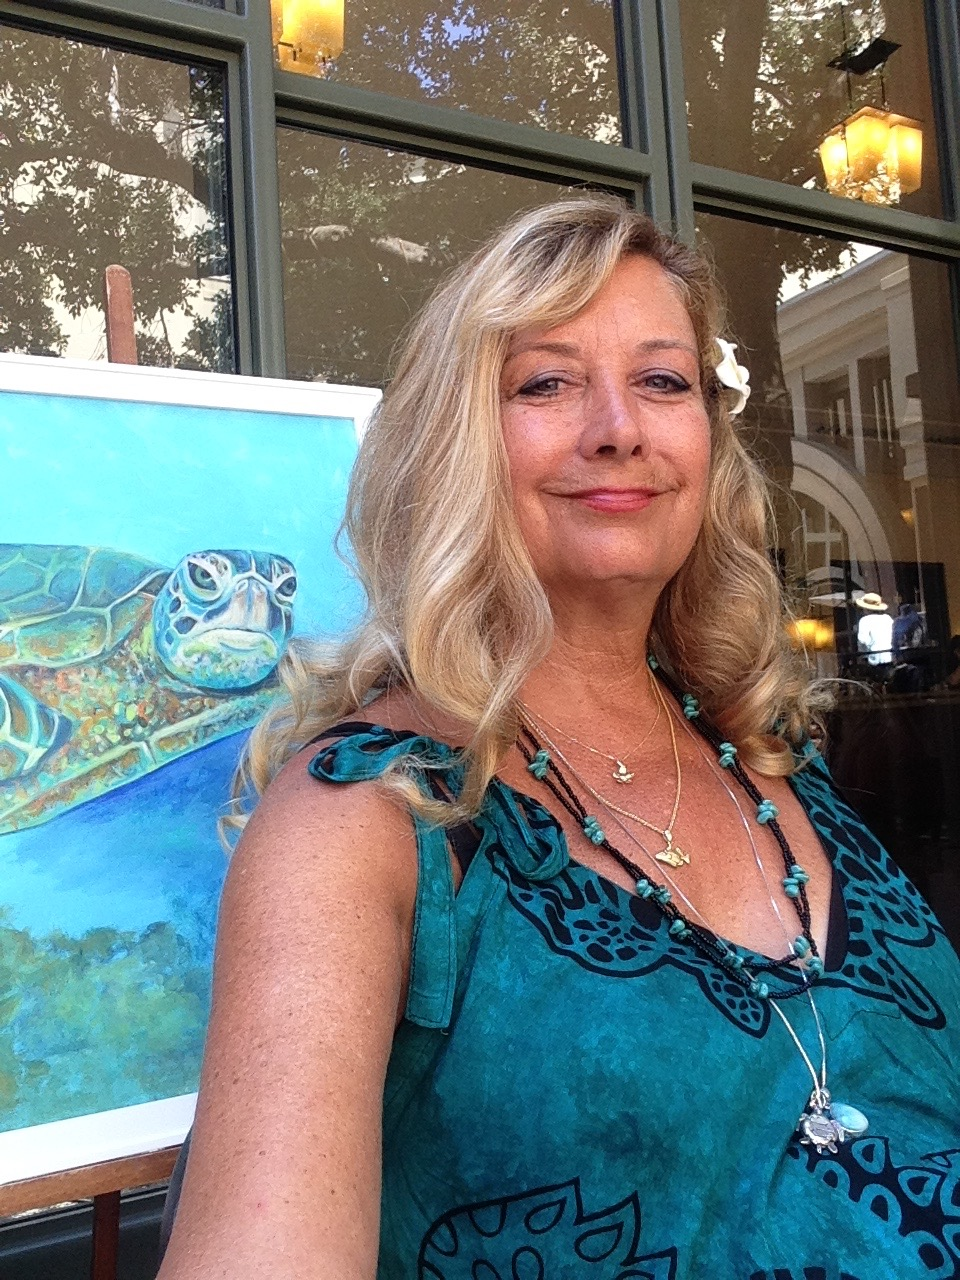 Honu Wisdom - Speaking with inner guidance